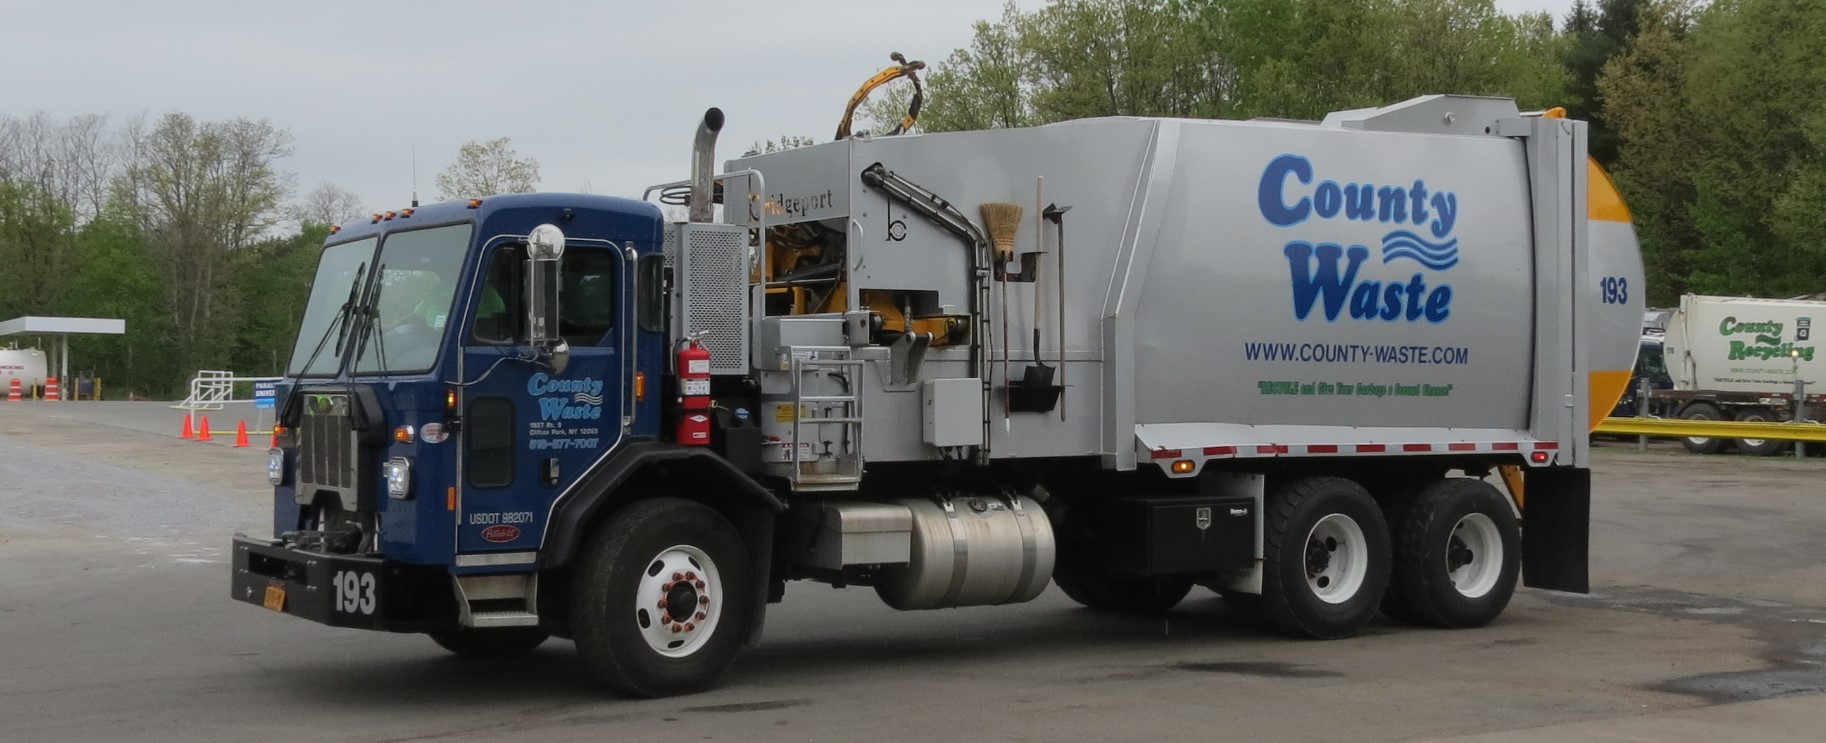 County Waste Truck